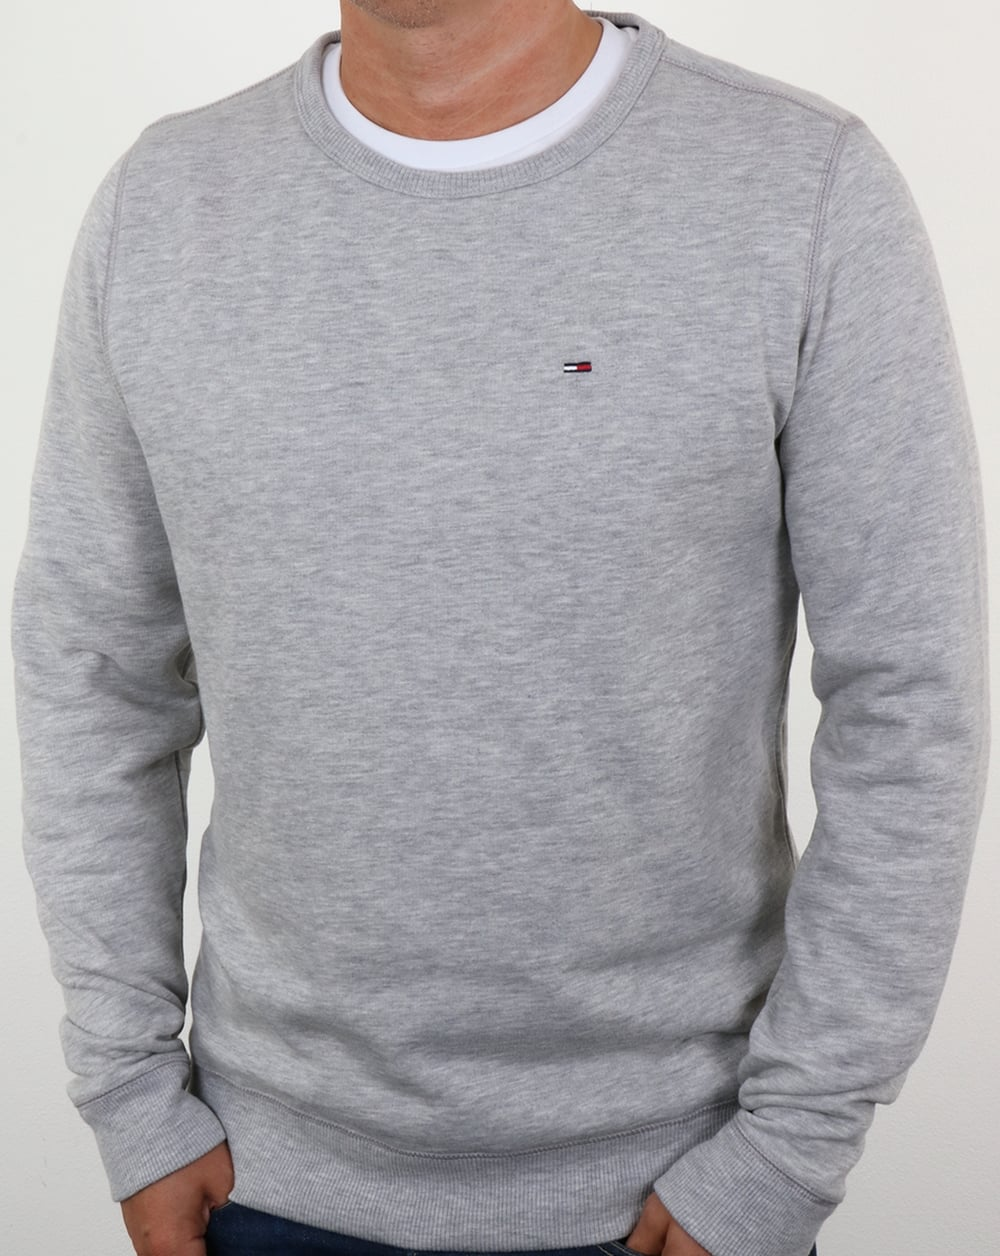 9ad2d9c2a Tommy Hilfiger Cotton Fleece Sweatshirt Grey Heather